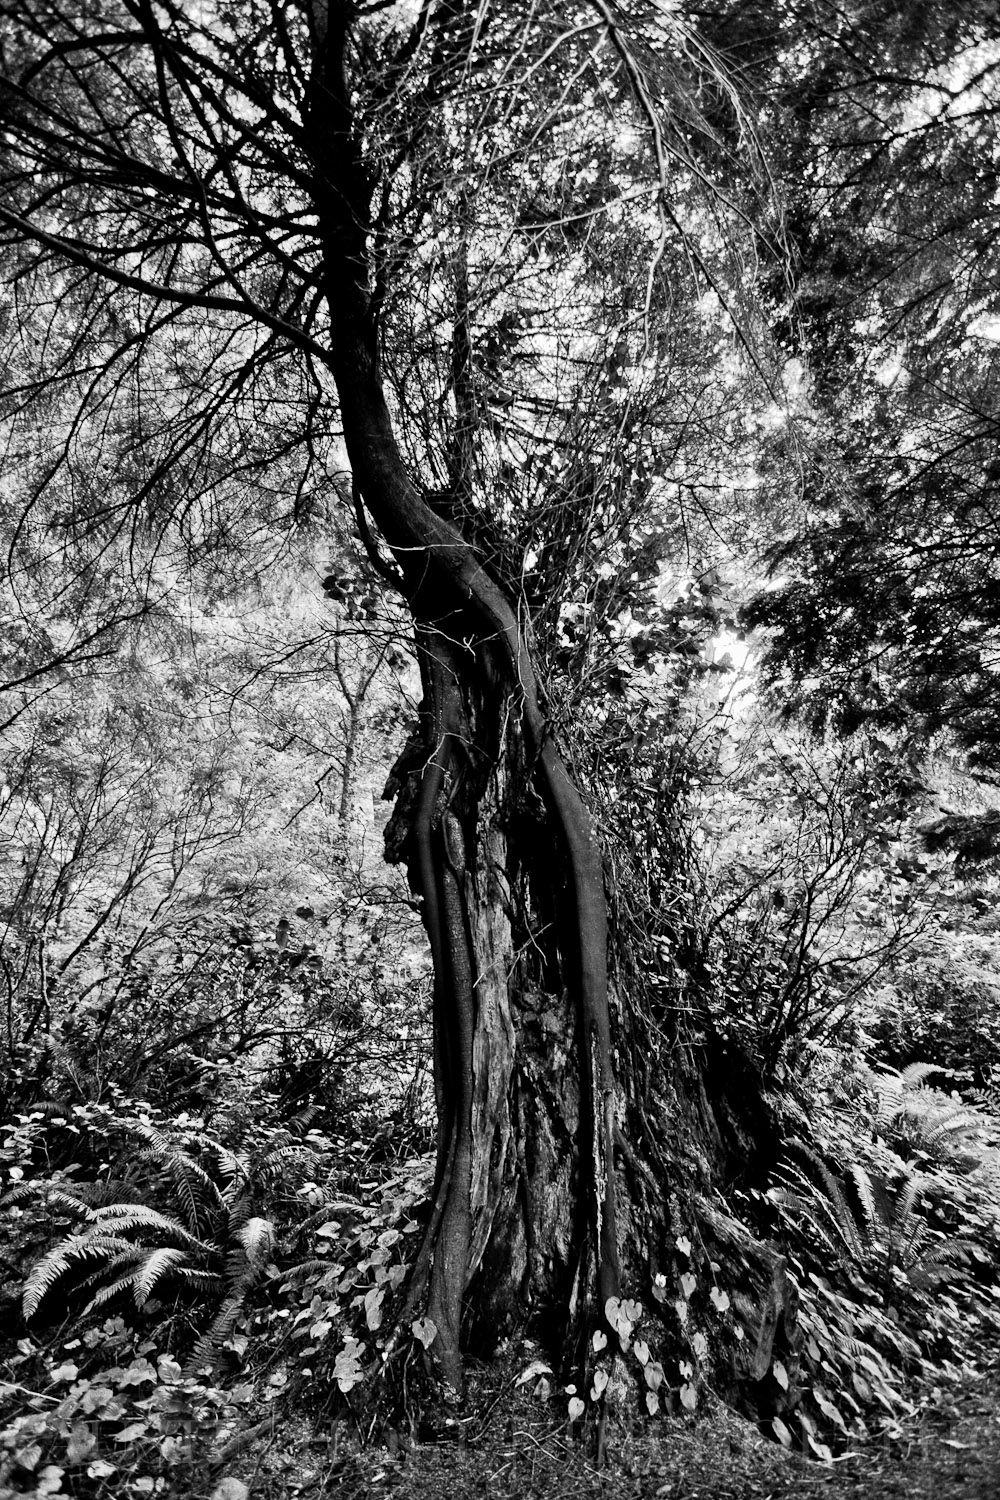 Black and white photo of a tree standing in the forest in Oregon.